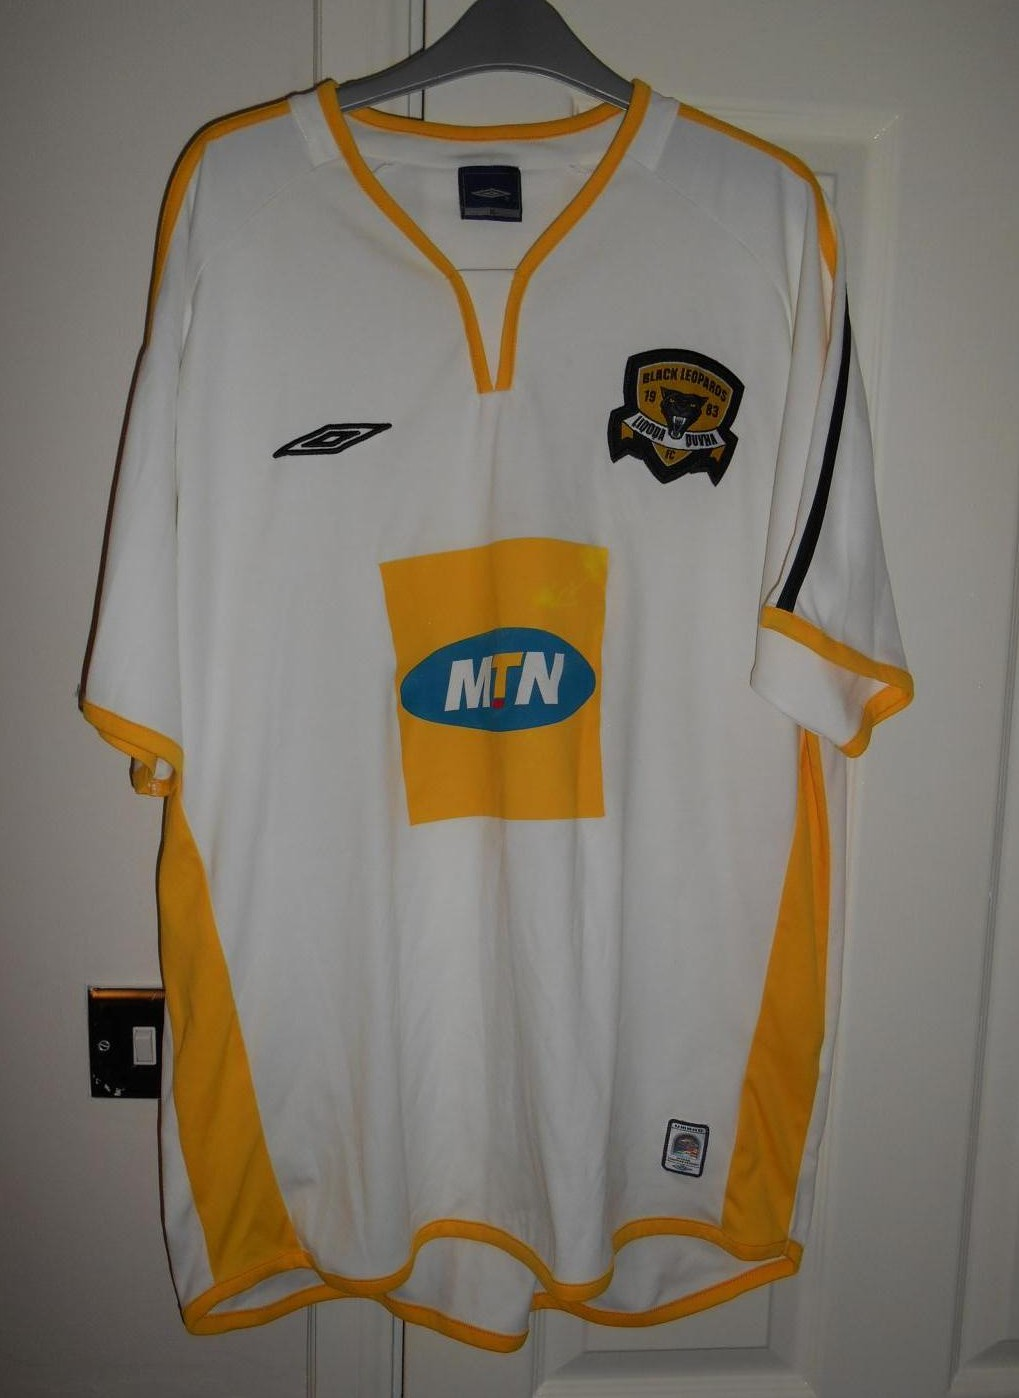 Black Leopards FC Away football shirt (unknown year). - photo#45